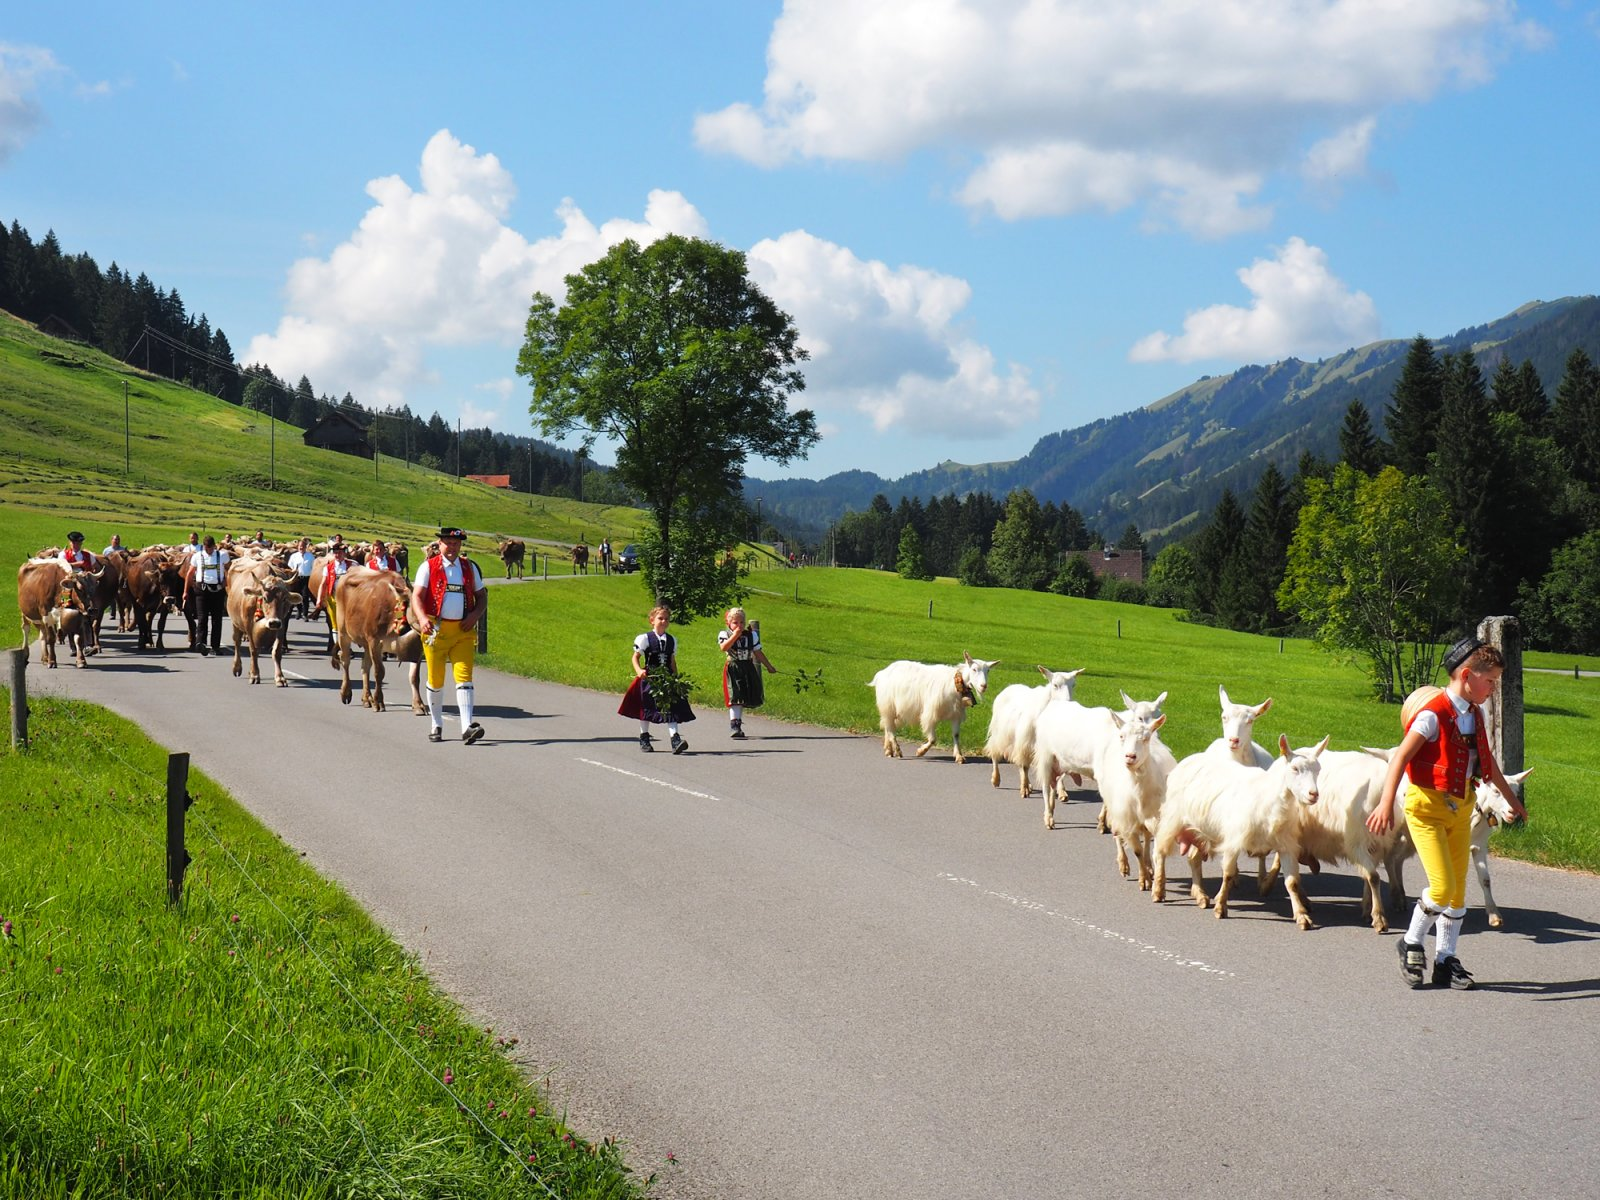 2021 guide to alpine cow parades in Switzerland - Appenzell